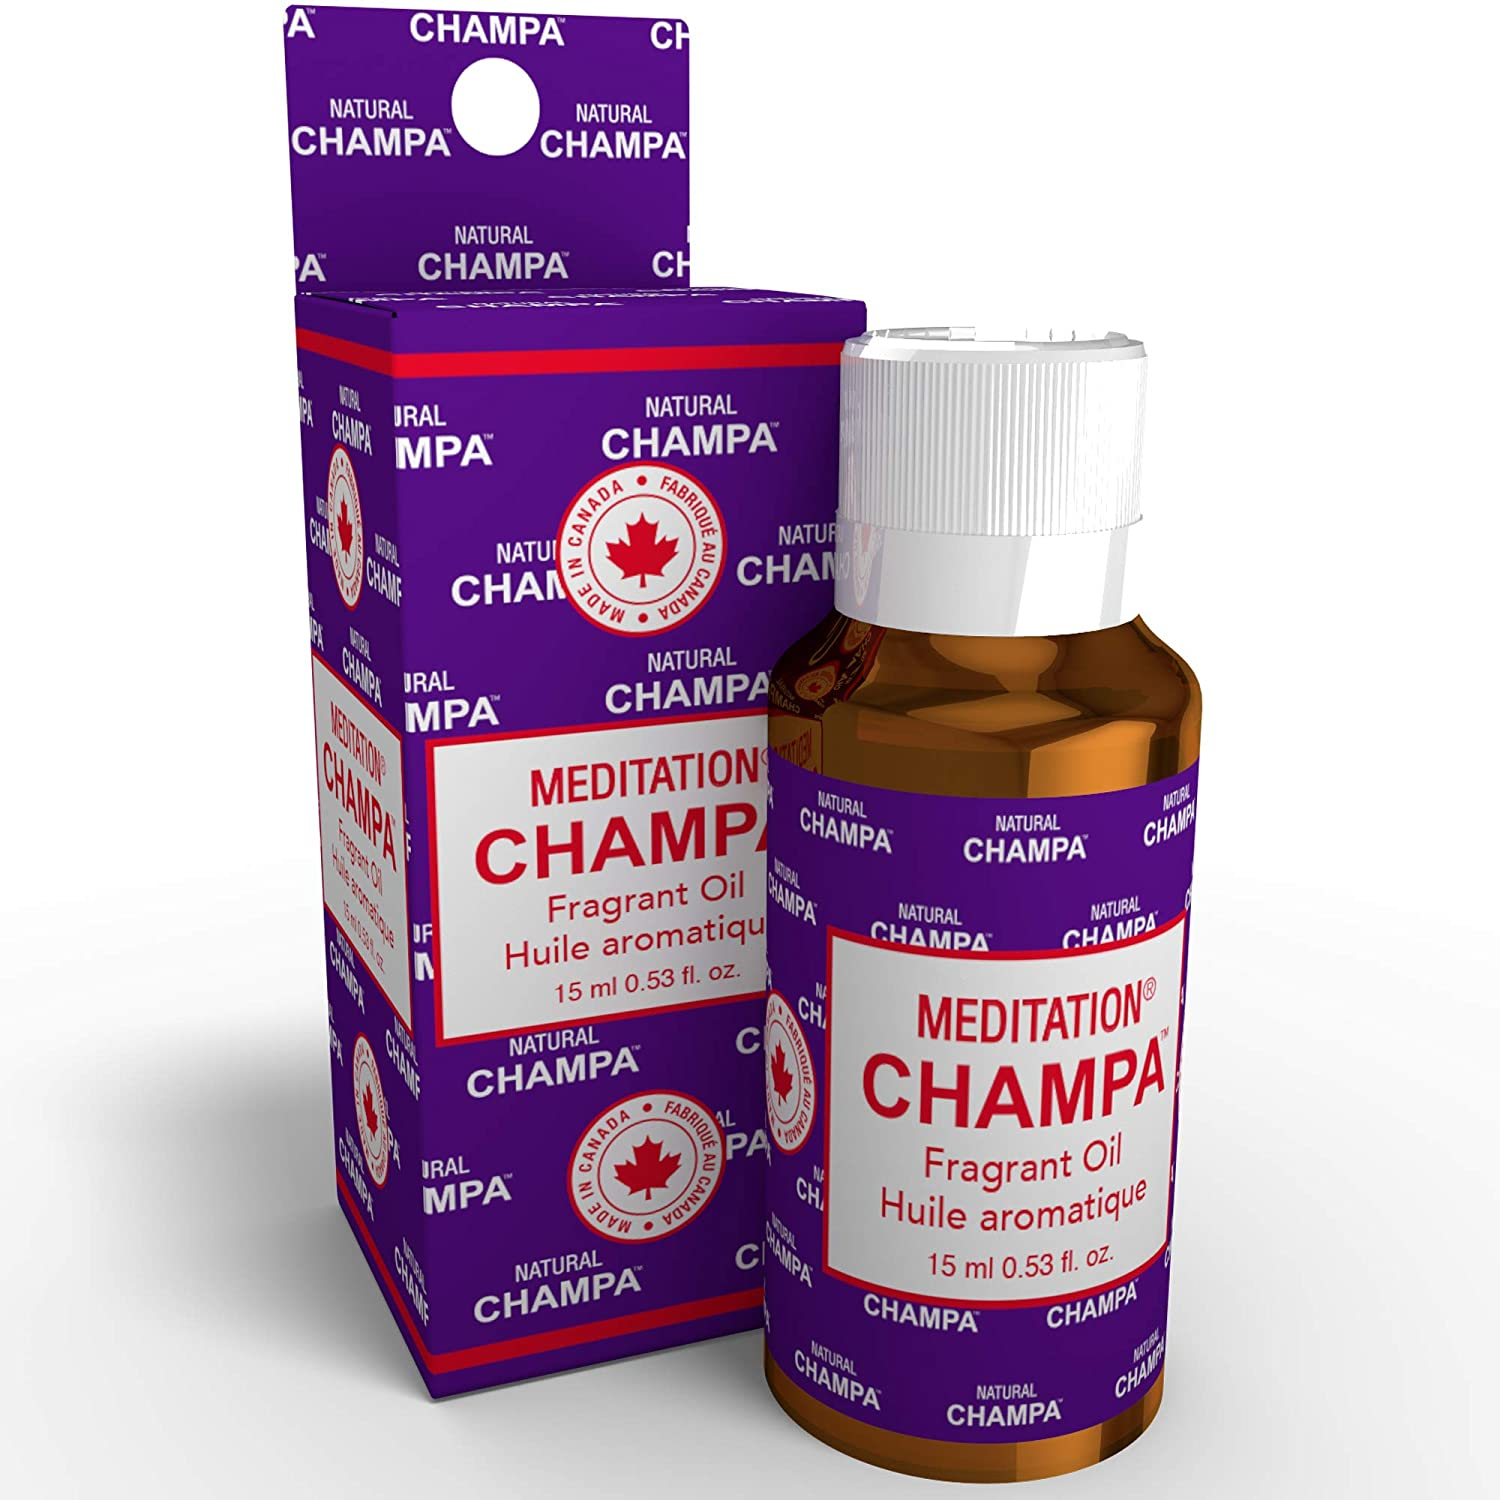 Natural Champa Meditation Fragrant Oil Concentrated Fragrance Oil - Ideal for Environmental Scenting, Bath, Perfumery, Oil Burners & Diffusers - Made with Natural Essential Oils.(15 ml.)